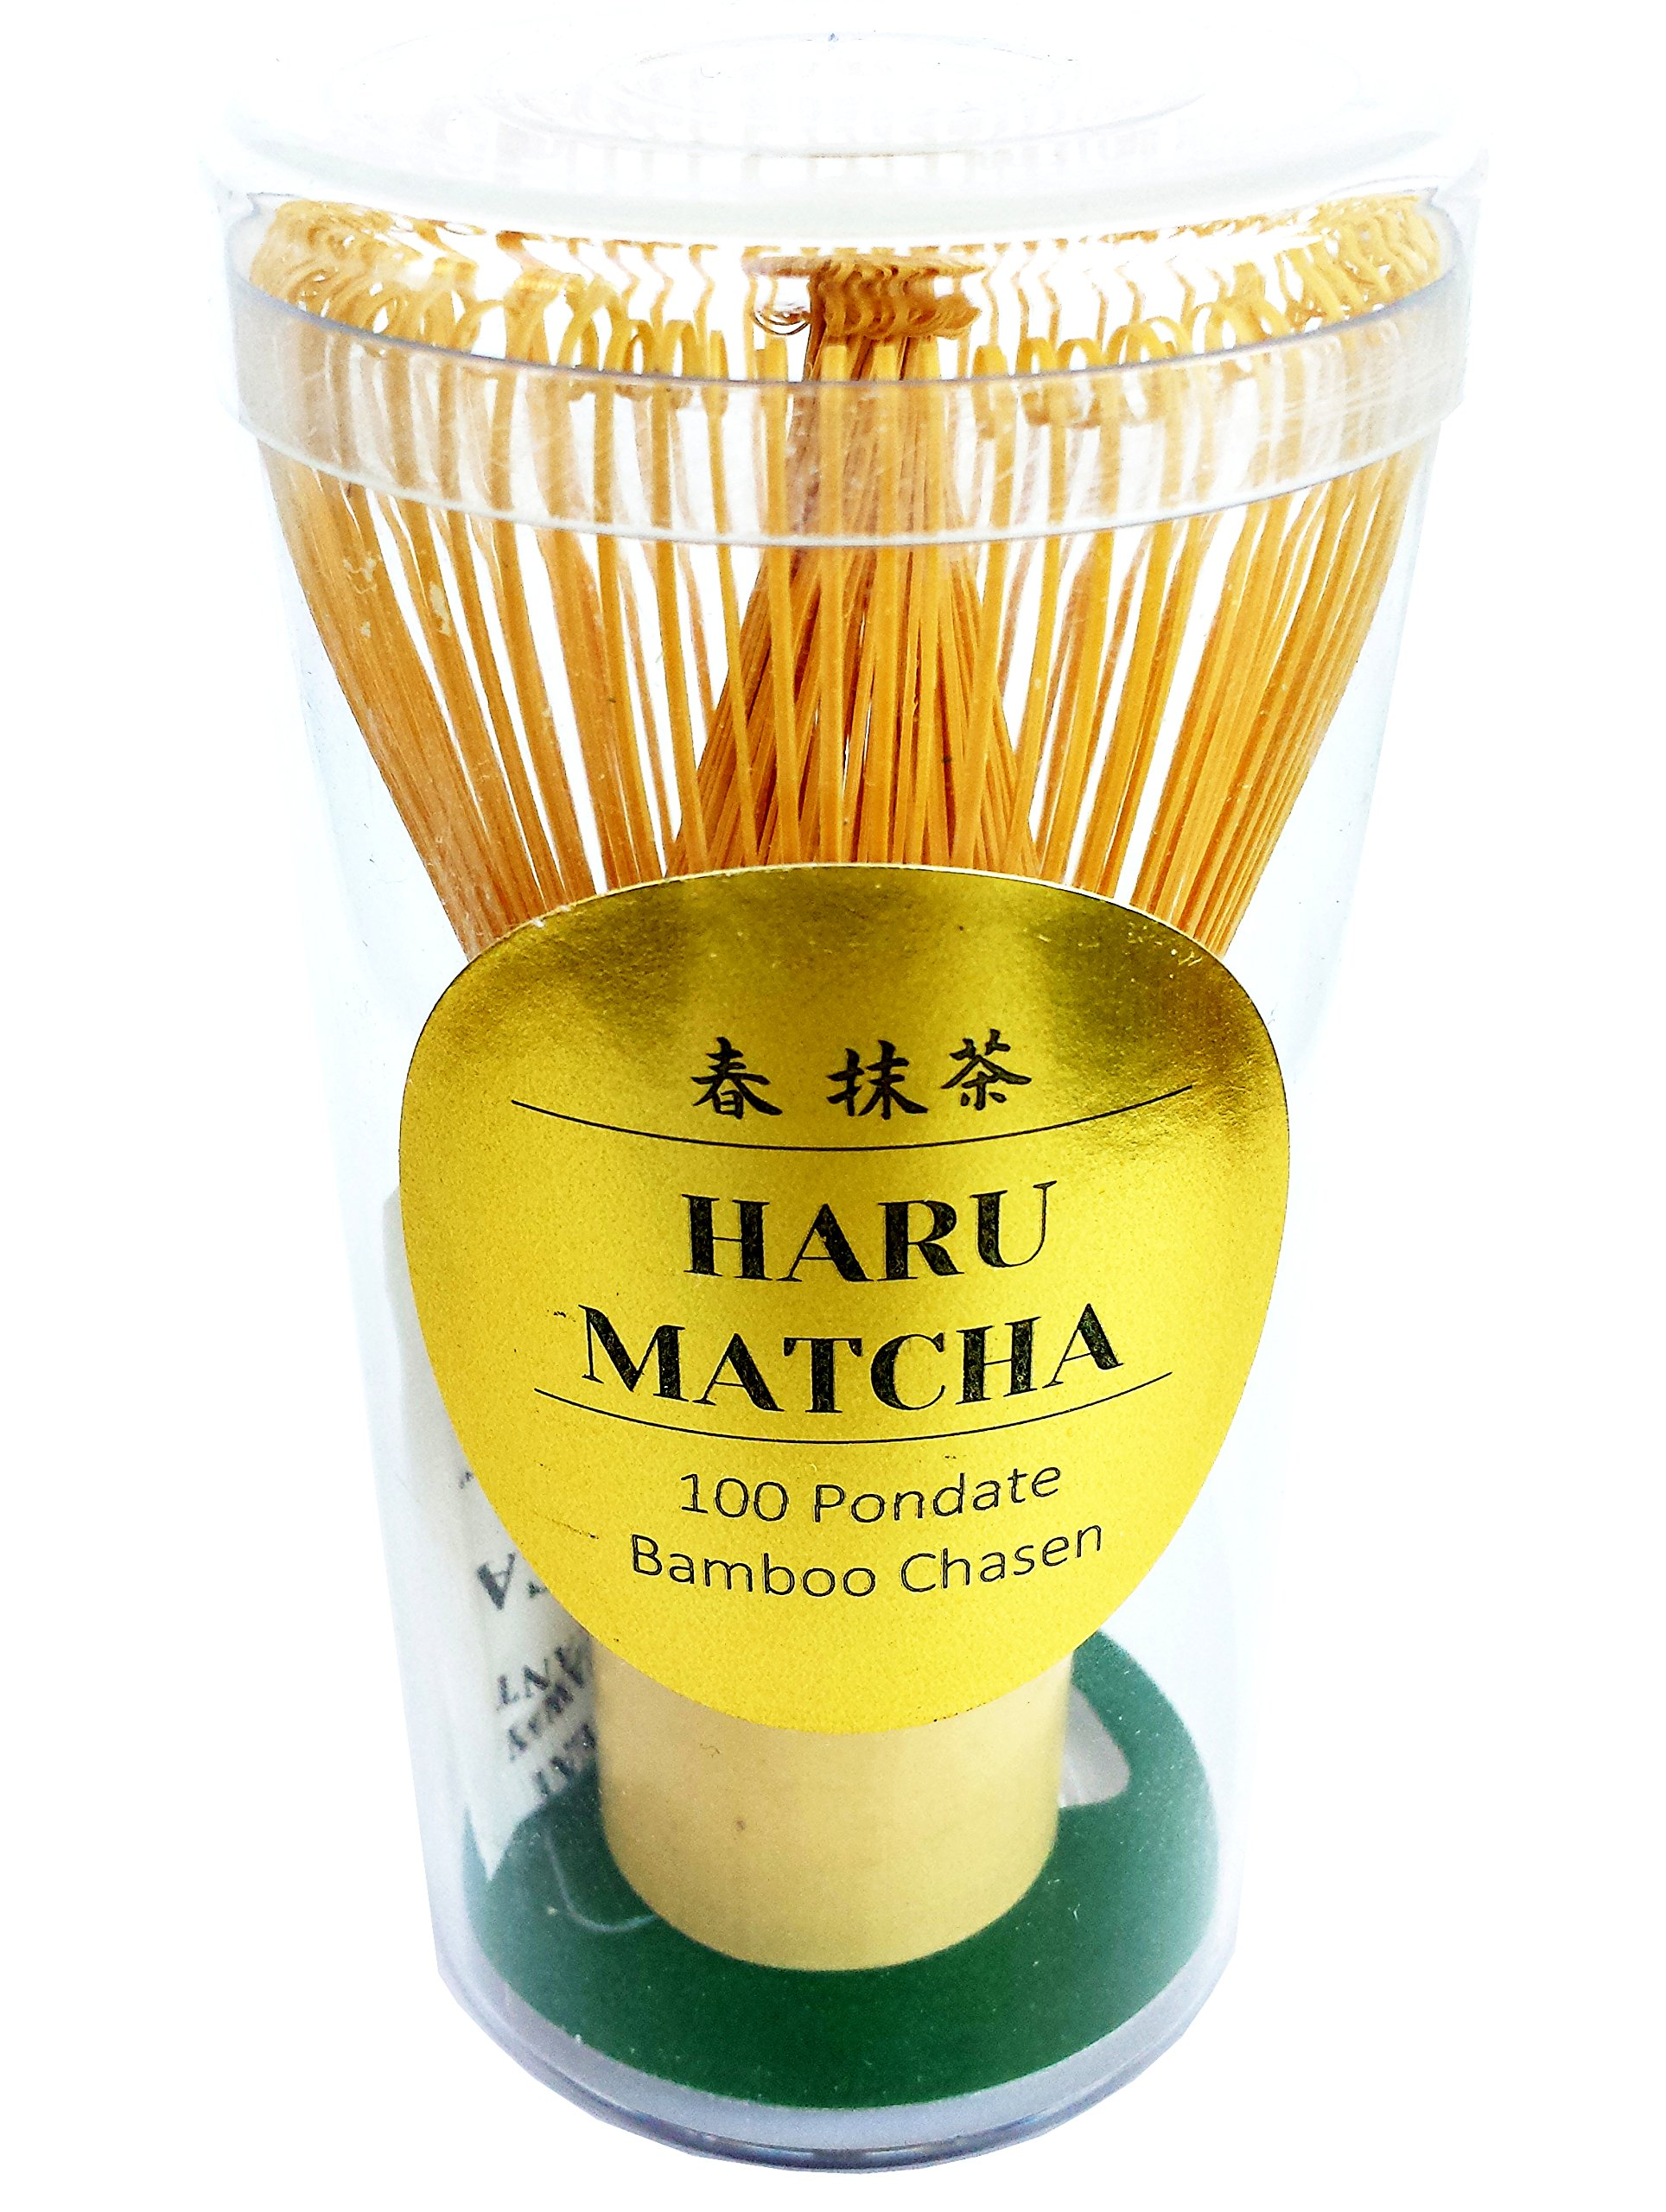 HARU MATCHA - MADE IN JAPAN - Traditional Handcarved Golden Bamboo Matcha Whisk (100 Prongs)